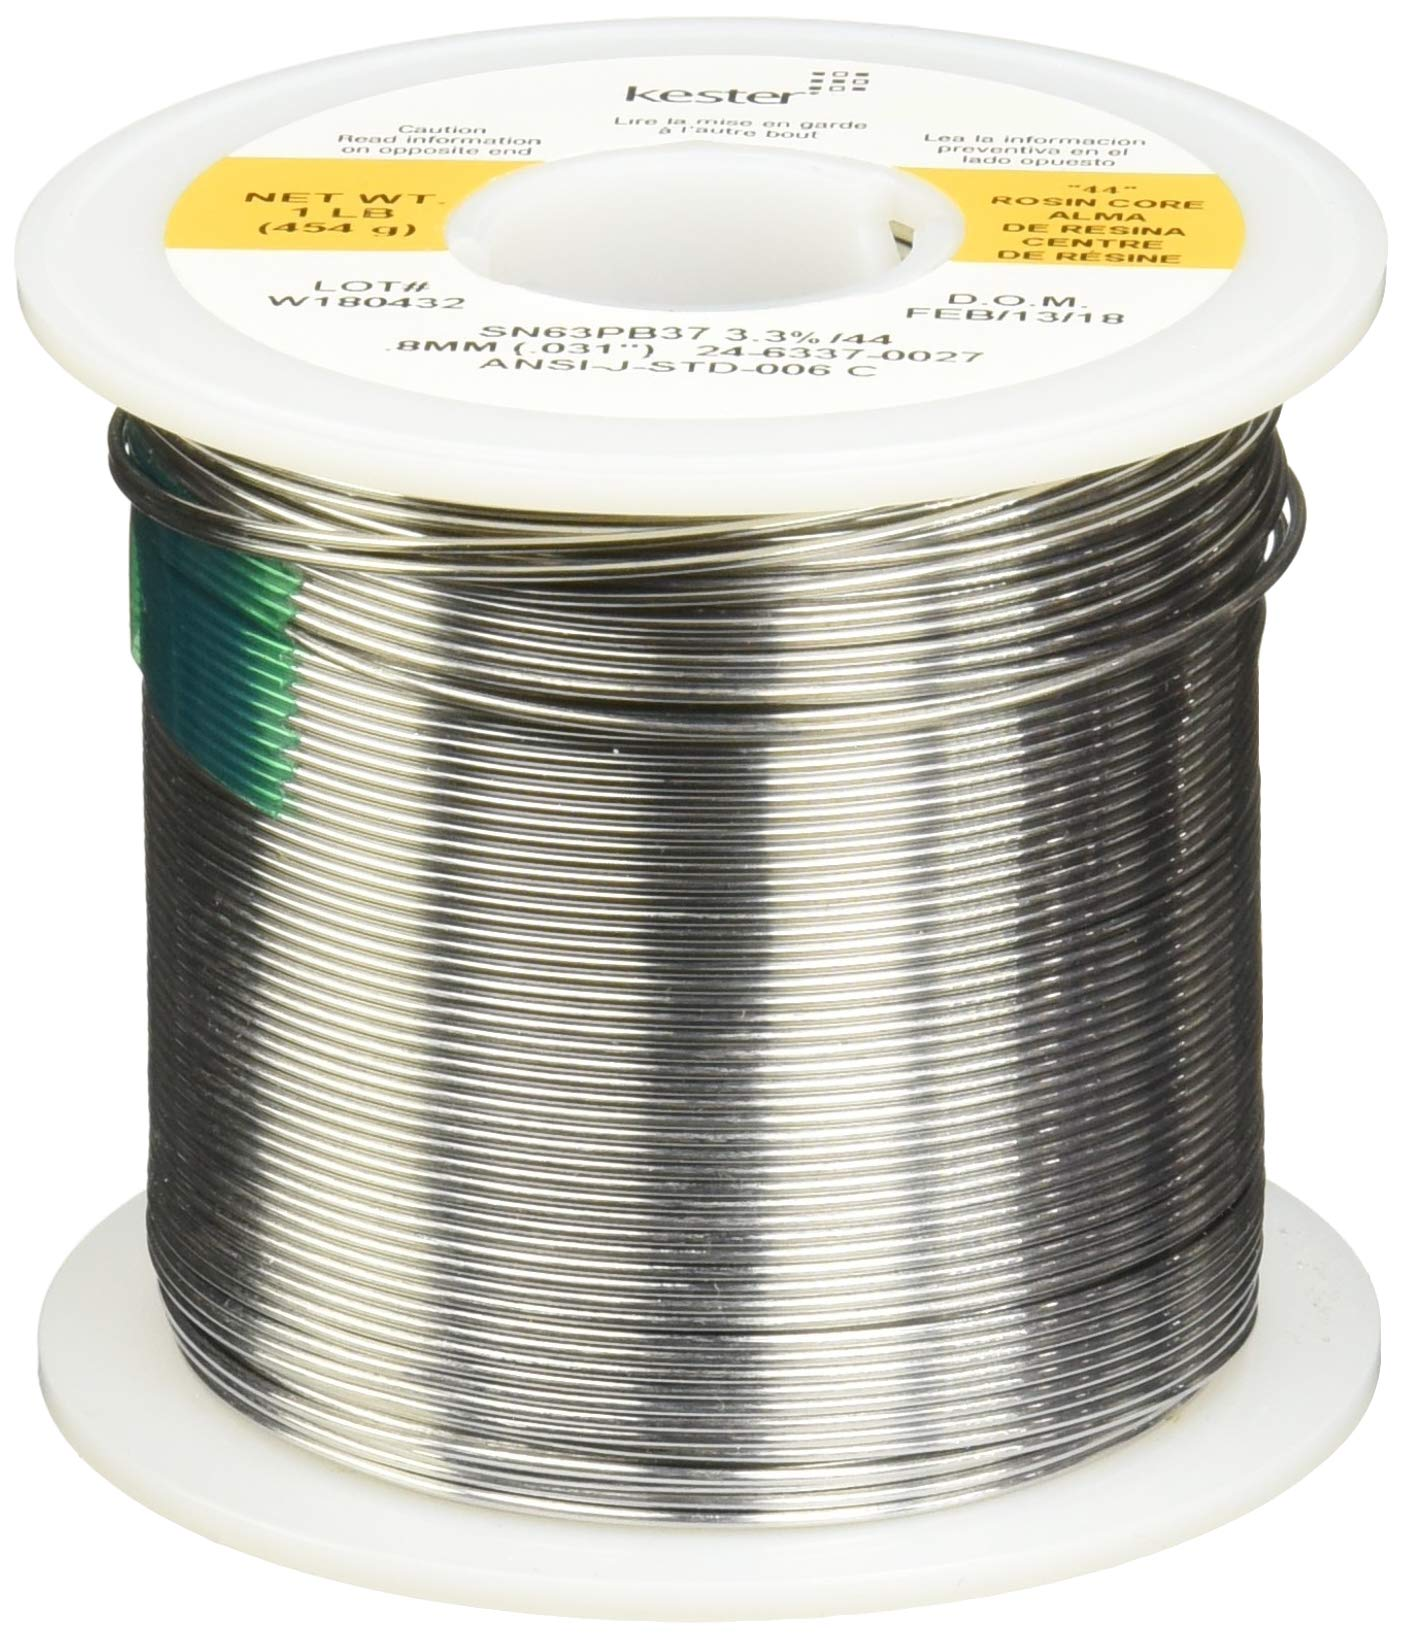 a285bc53196 Best Rated in Solder   Helpful Customer Reviews - Amazon.com